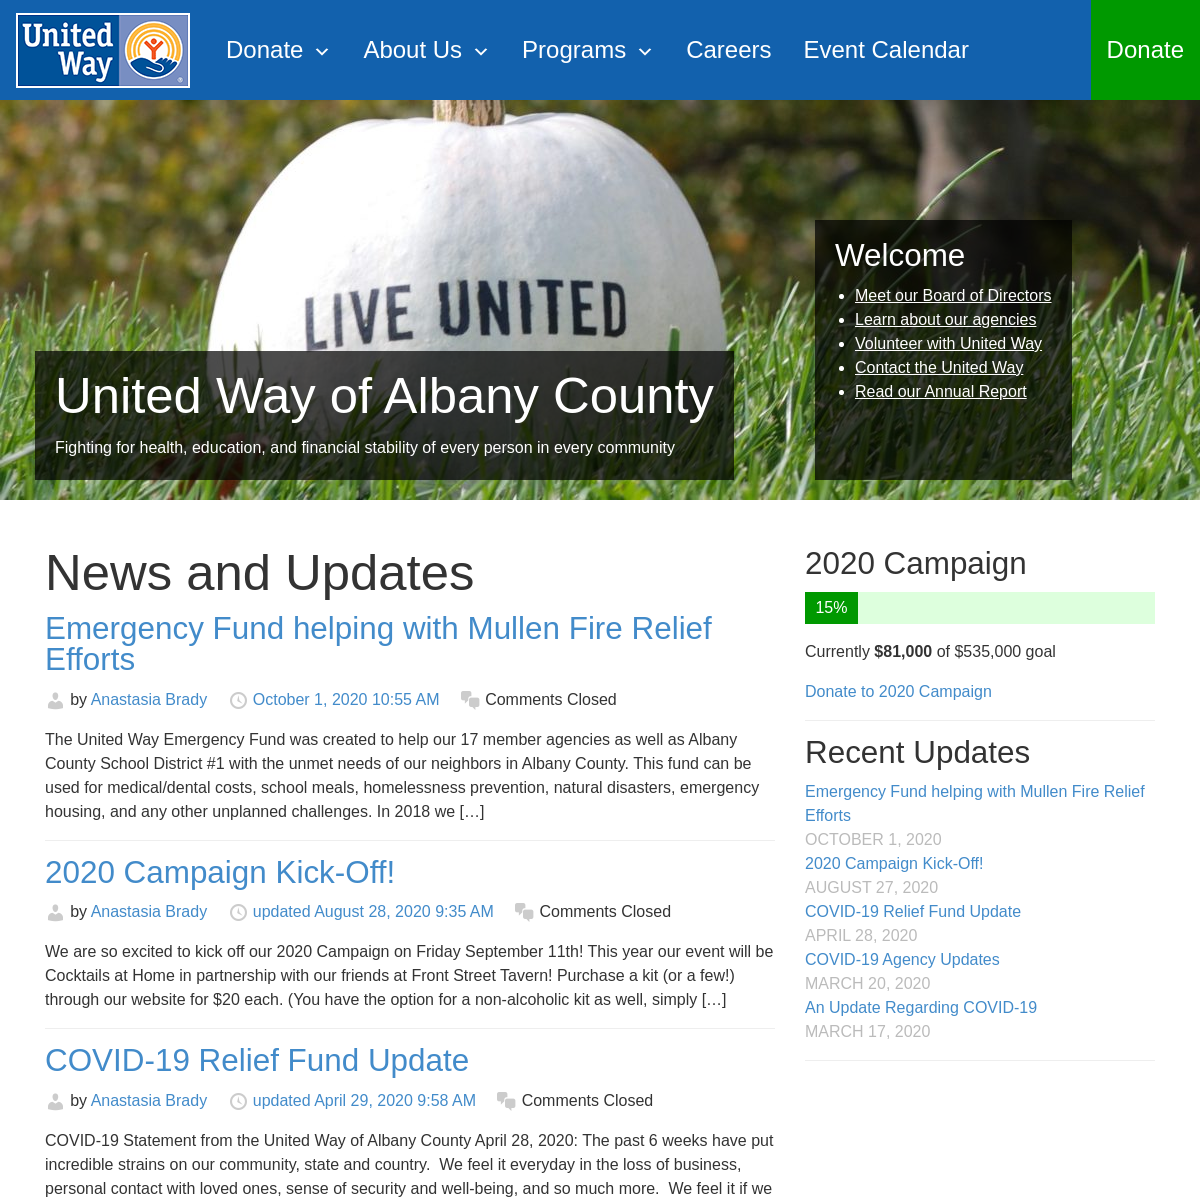 United Way of Albany County – Fighting for health, education, and financial stability of every person in every communityUnited